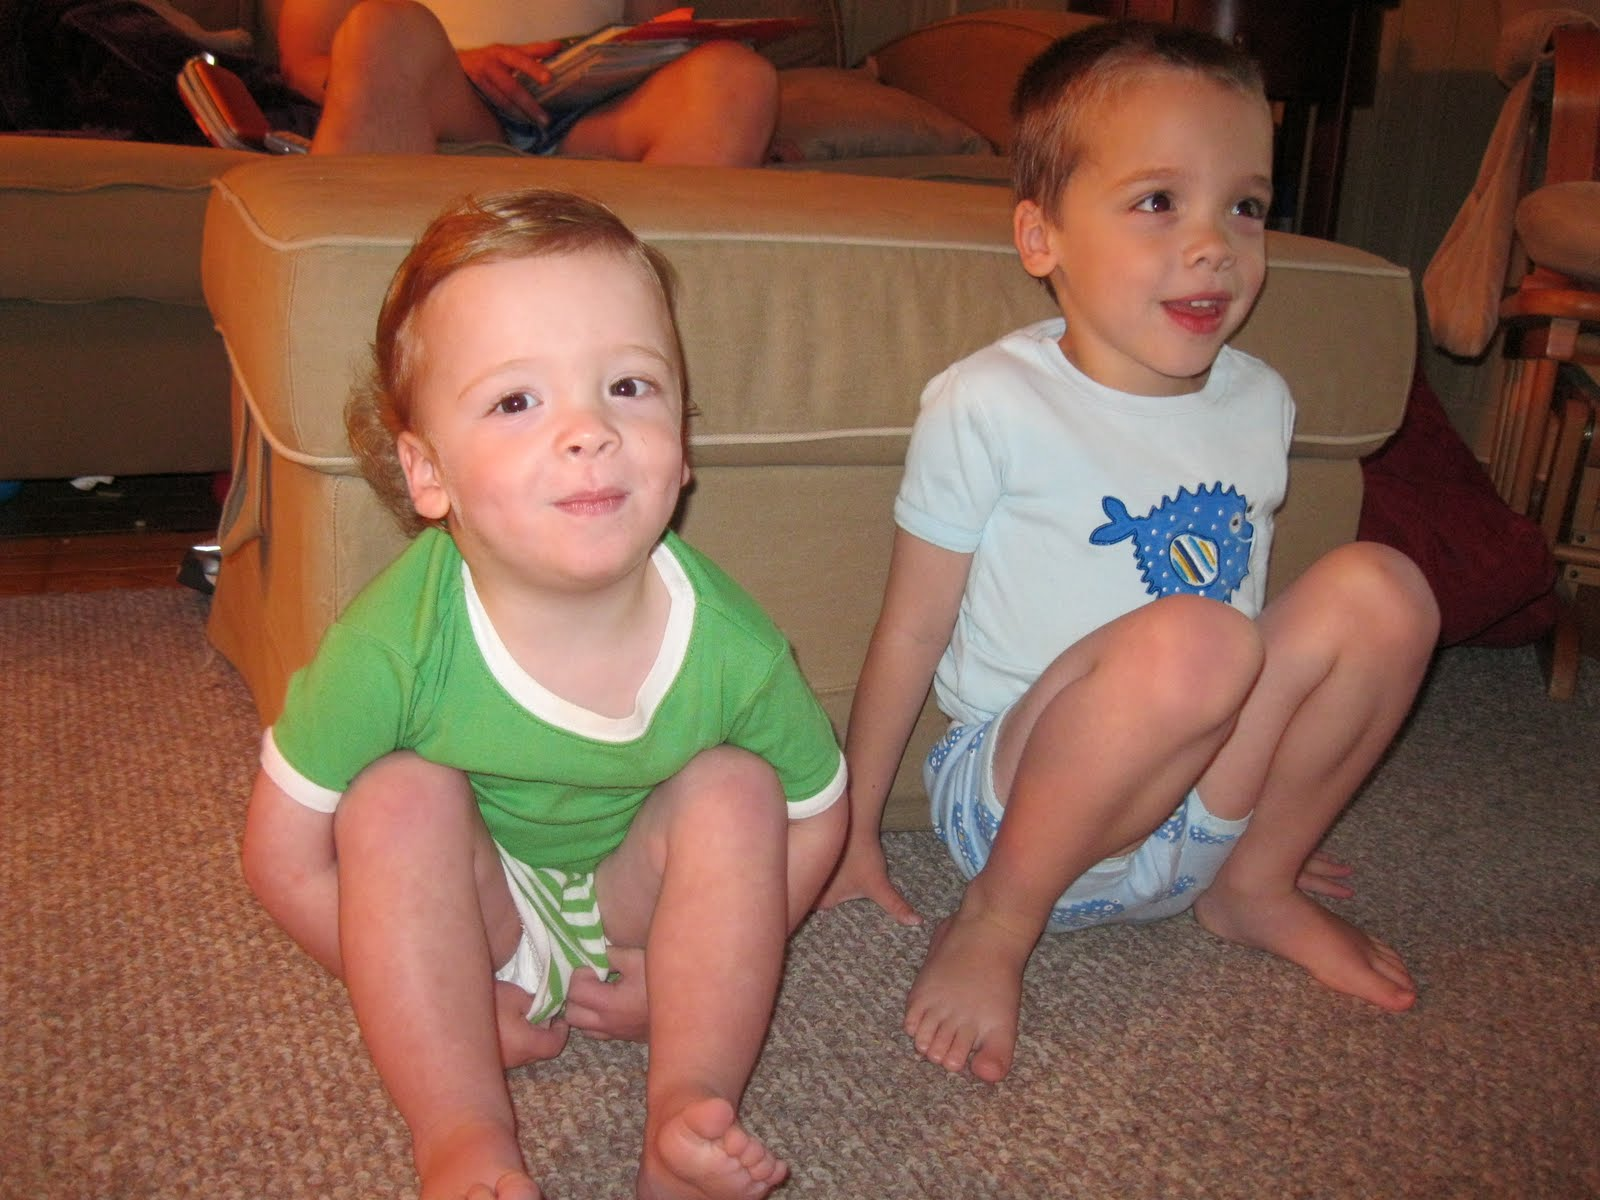 diaper boys 2 squeaky clean boys watching